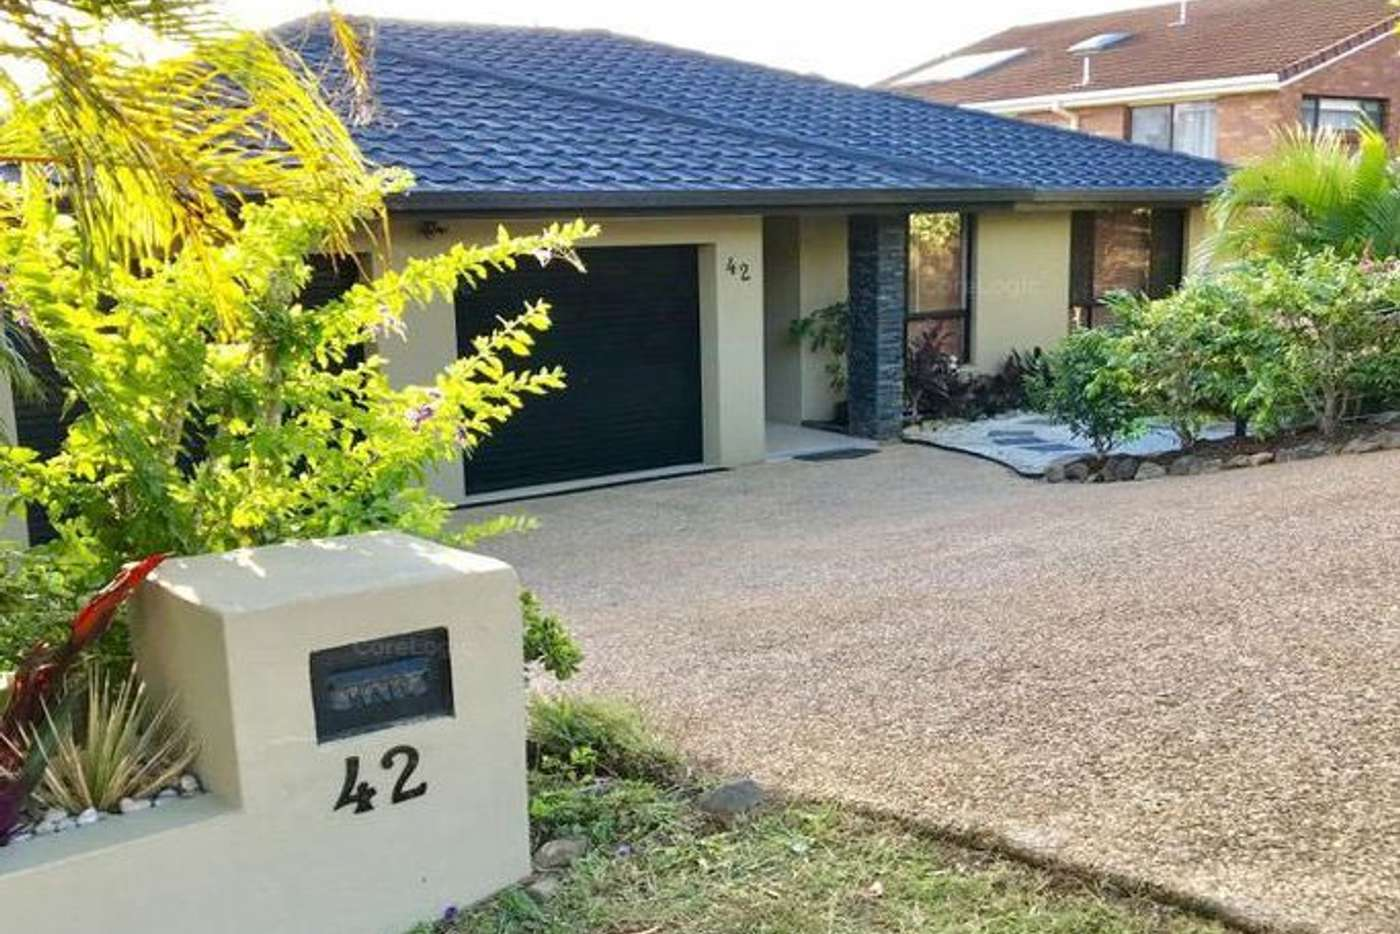 Main view of Homely house listing, 42 Warringa Drive, Bilambil Heights NSW 2486